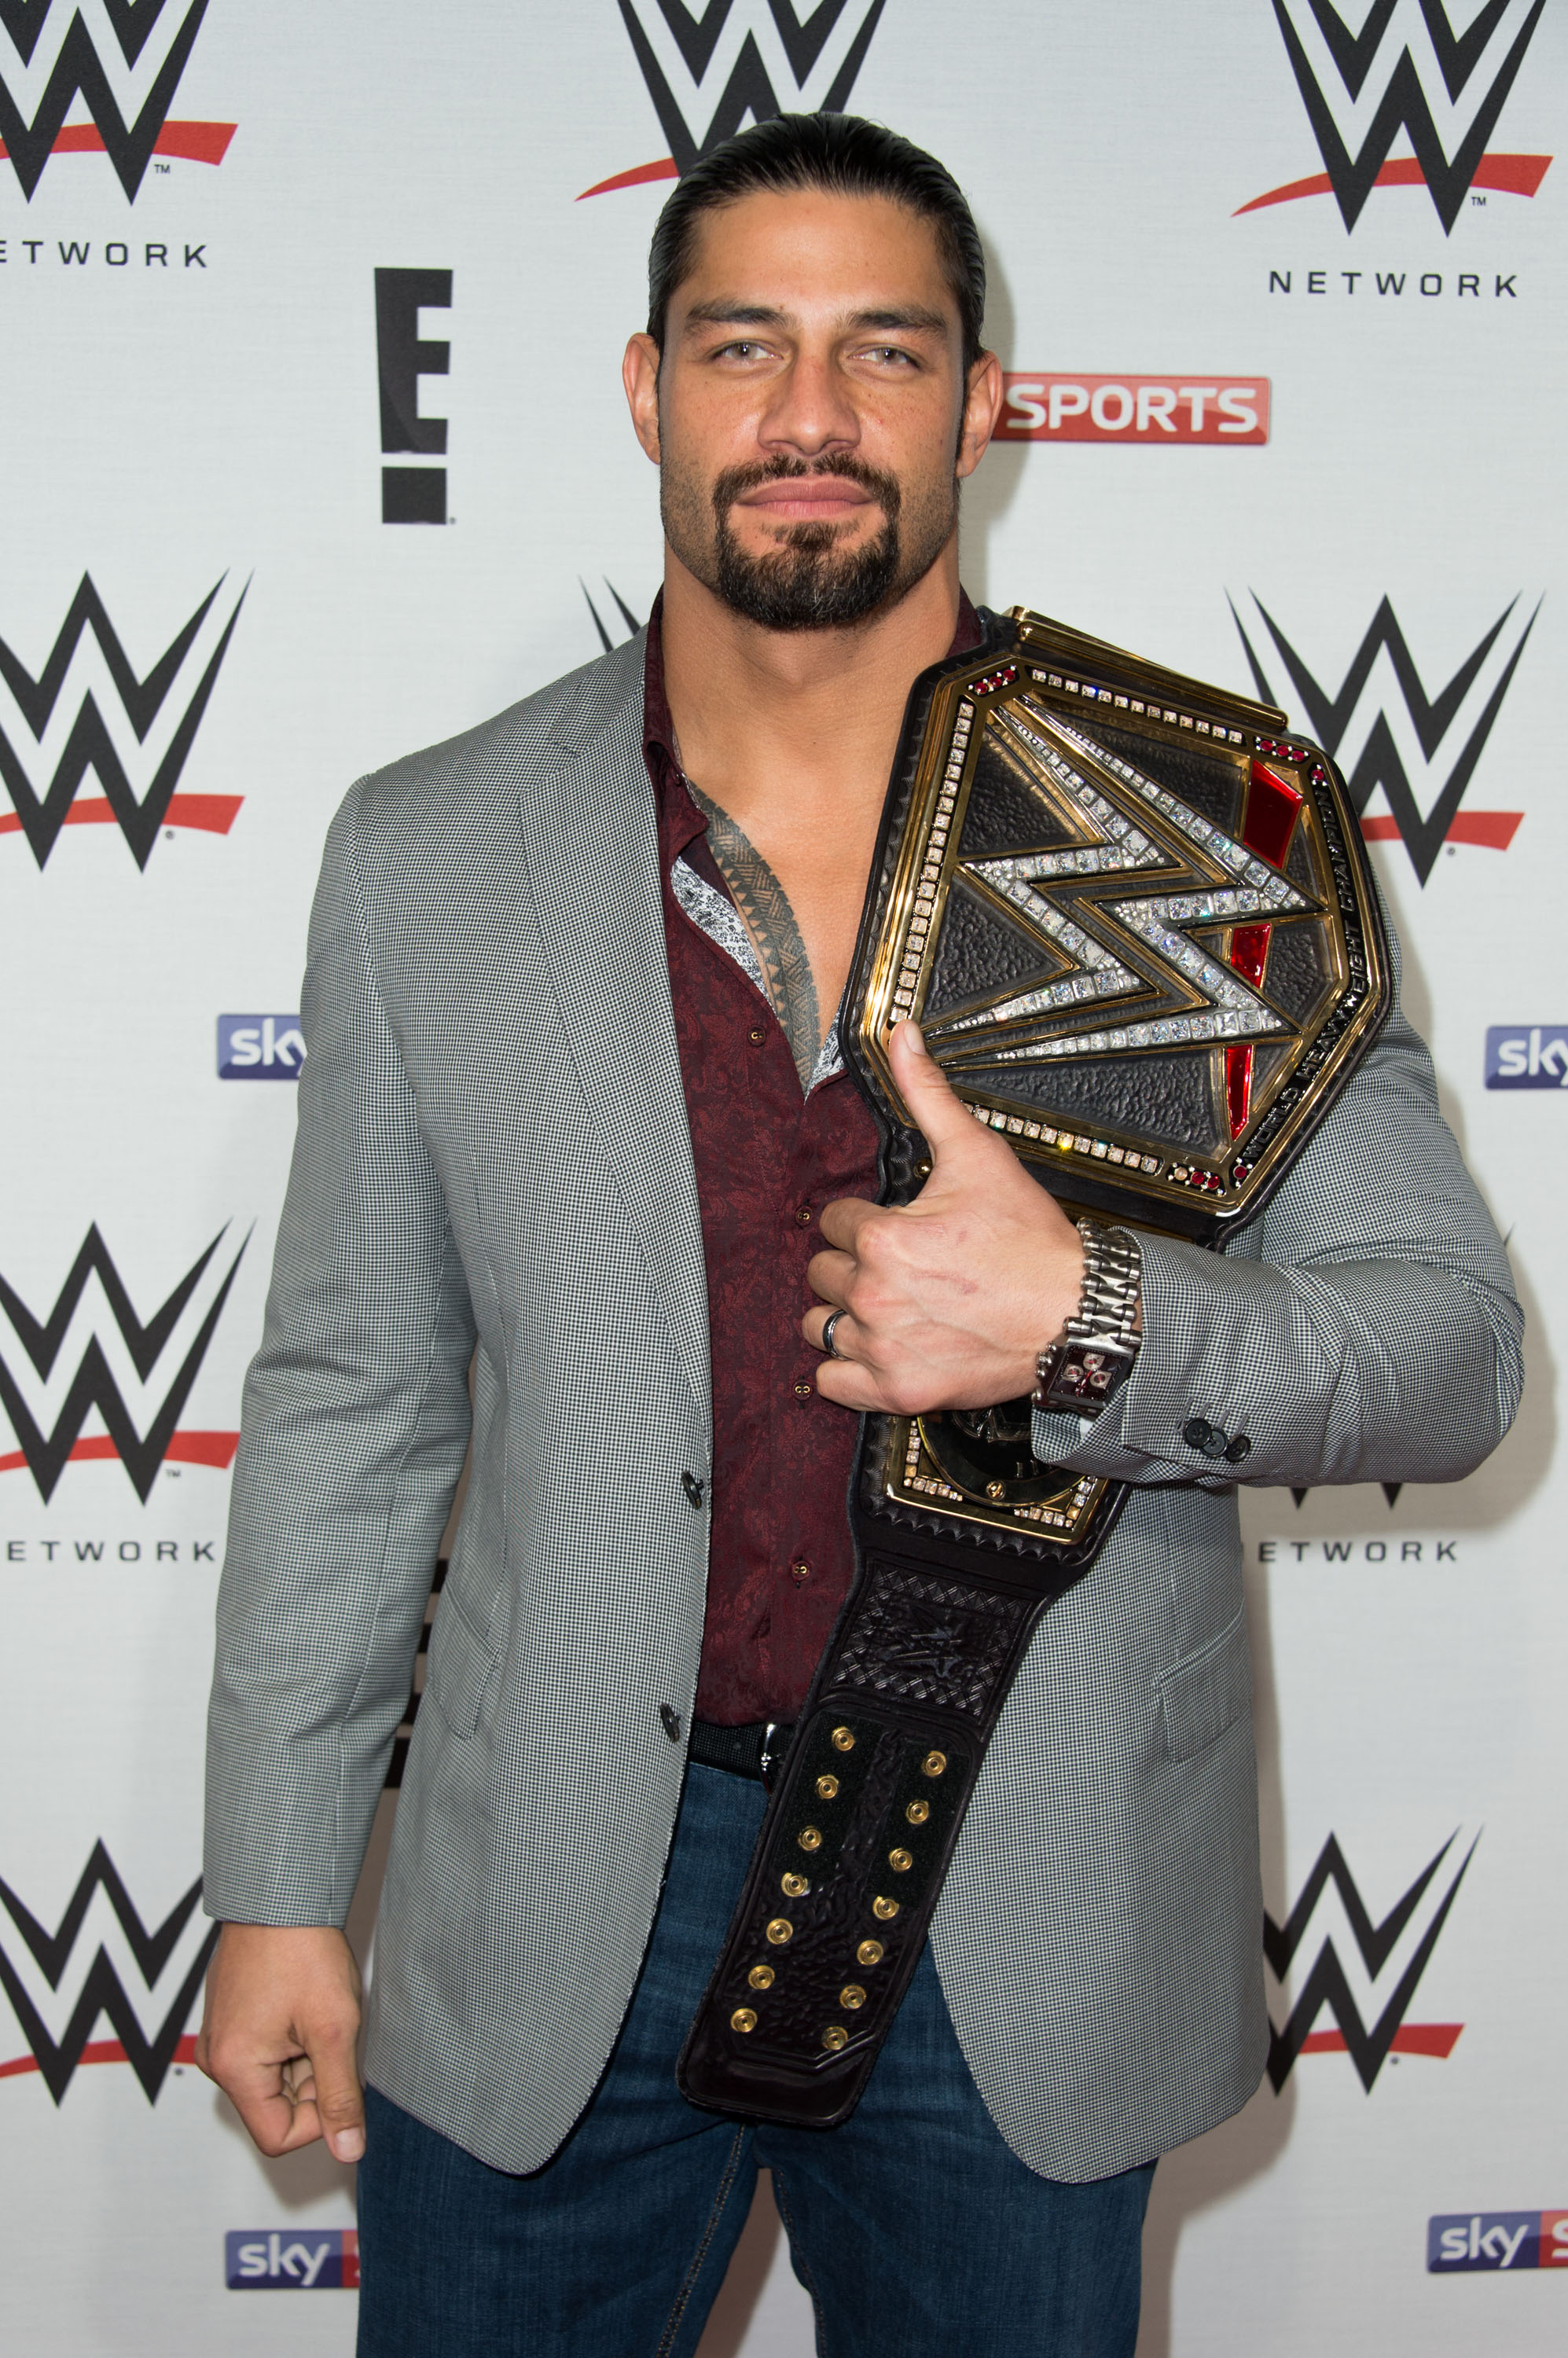 Wwe News What Roman Reigns Suspension Means For Wwe